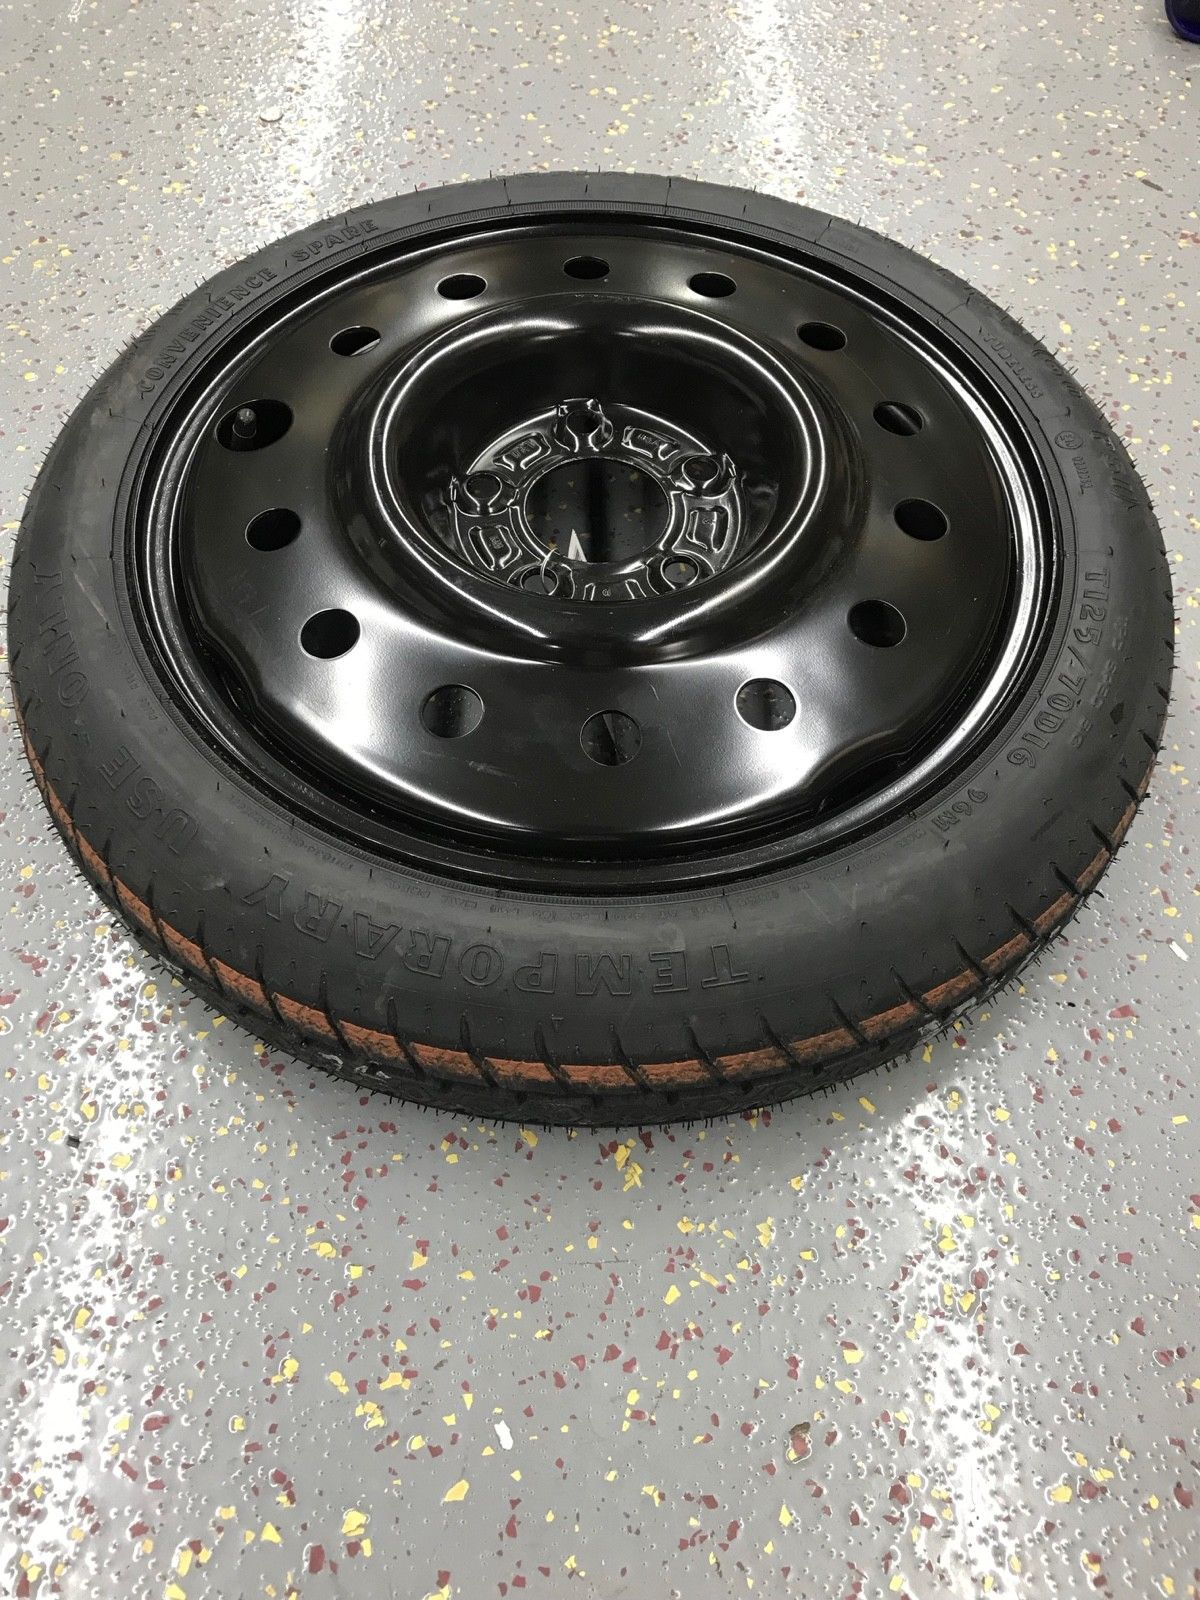 GoodYear Buick LaCrosse Part T125 70 D16 96M  Spare Donut Tire Wheel Assembly